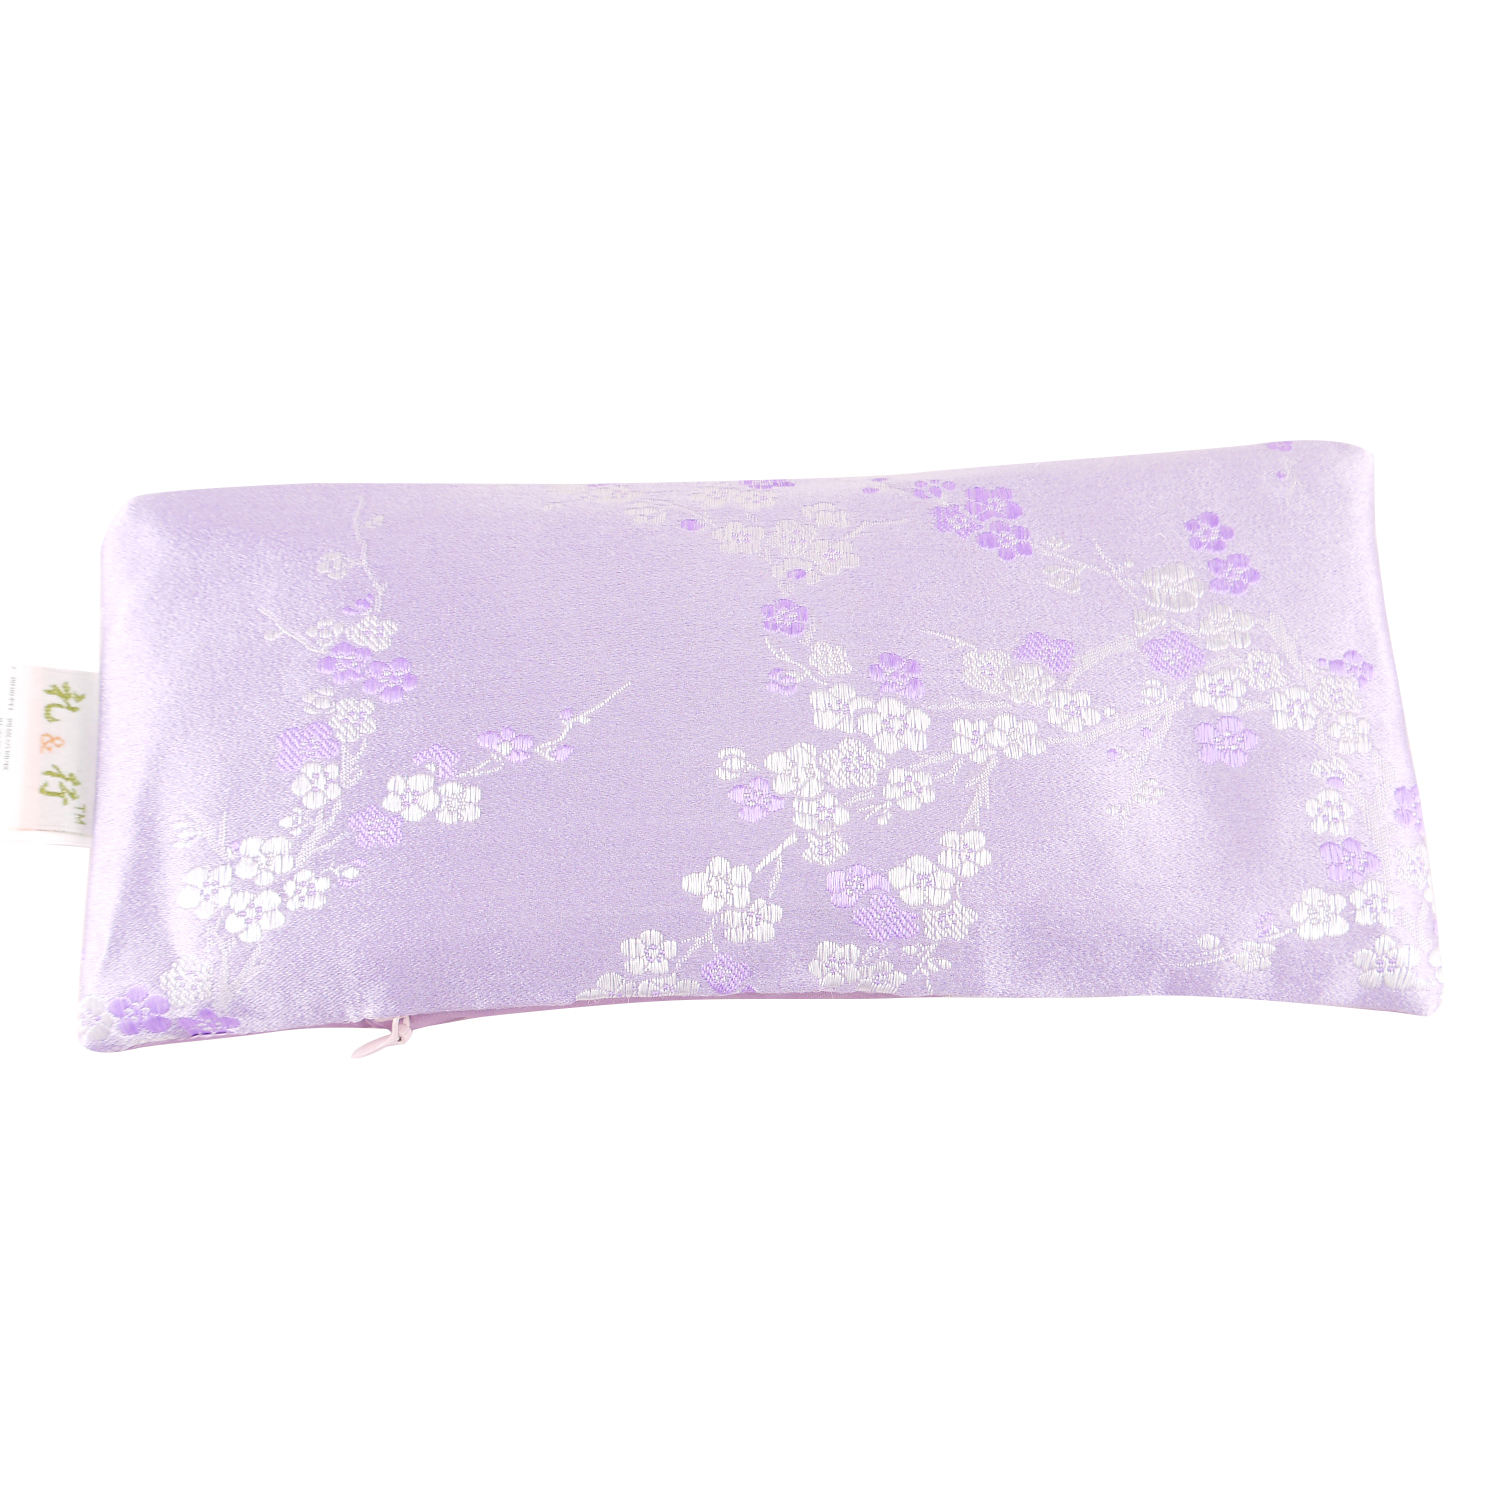 Lavender Stuffed Silk Eye Pillow filled with Flaxseeds